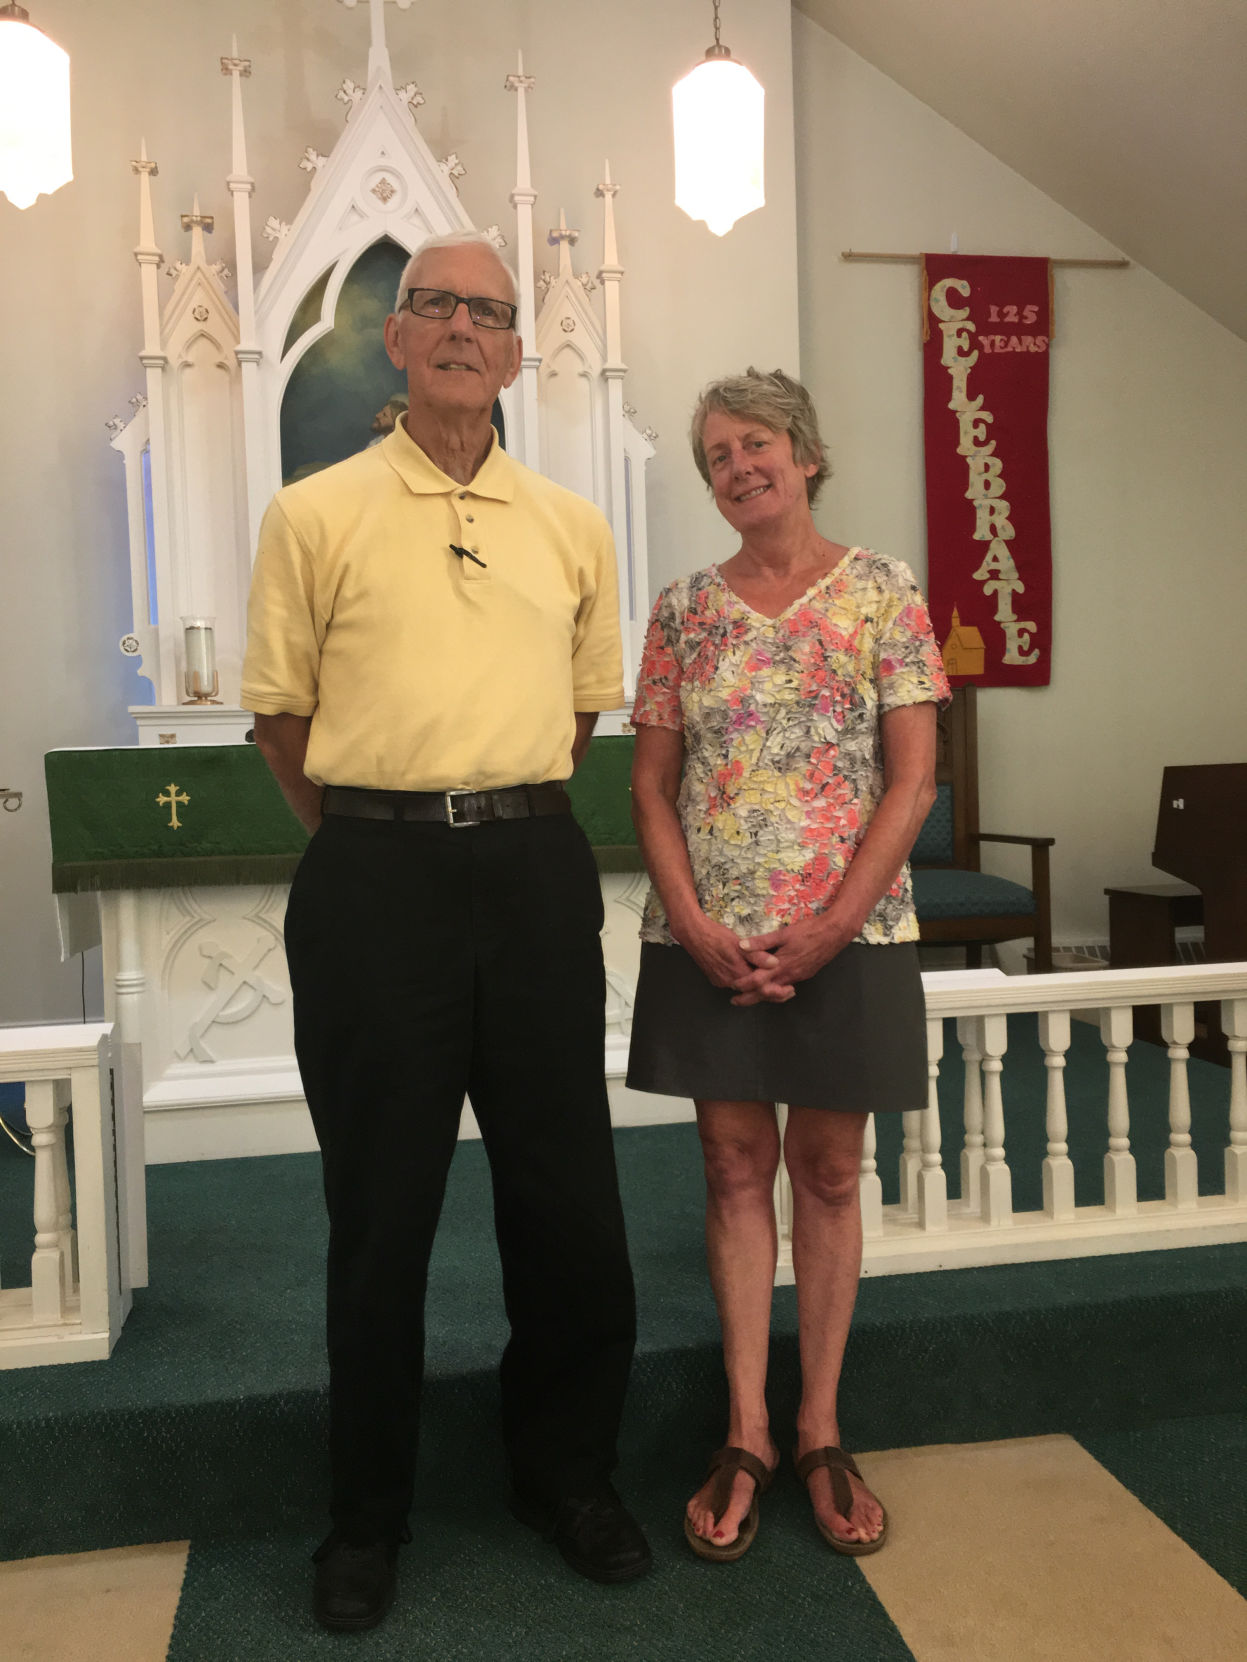 Bayfield church invites community to celebrate 125 years